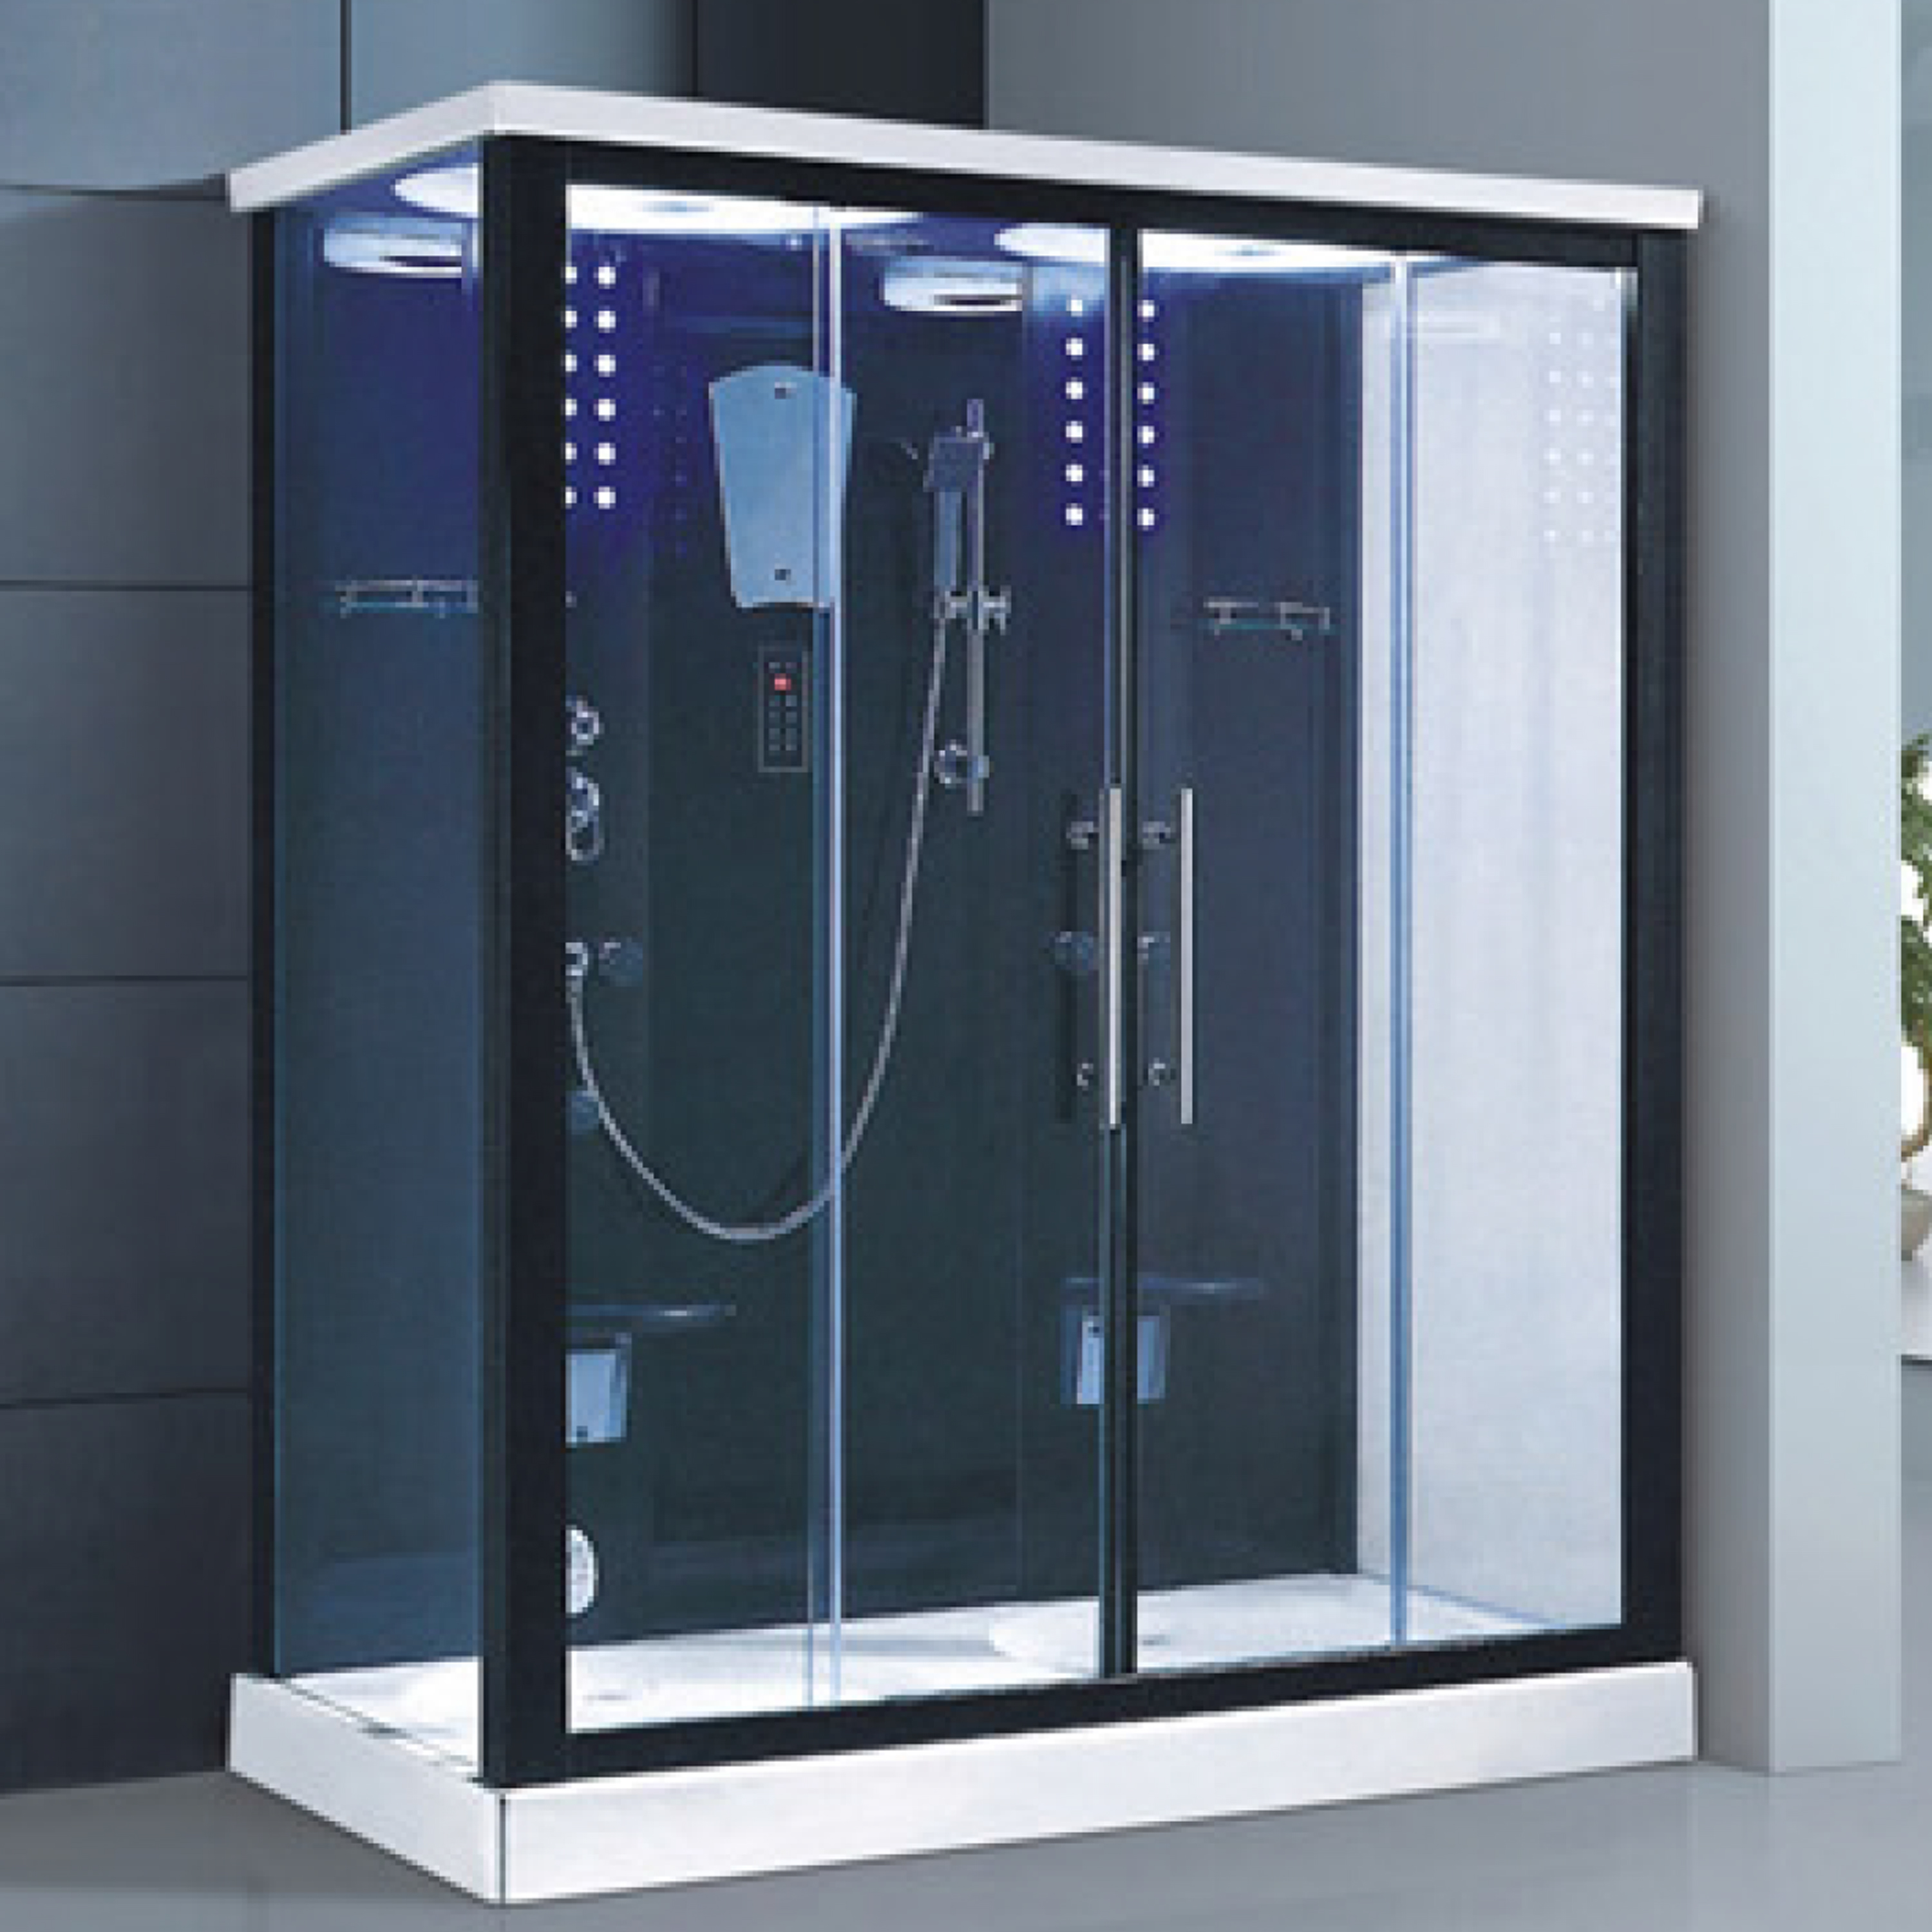 luxury home steam shower cabin cubicles room bath kits 1200x900